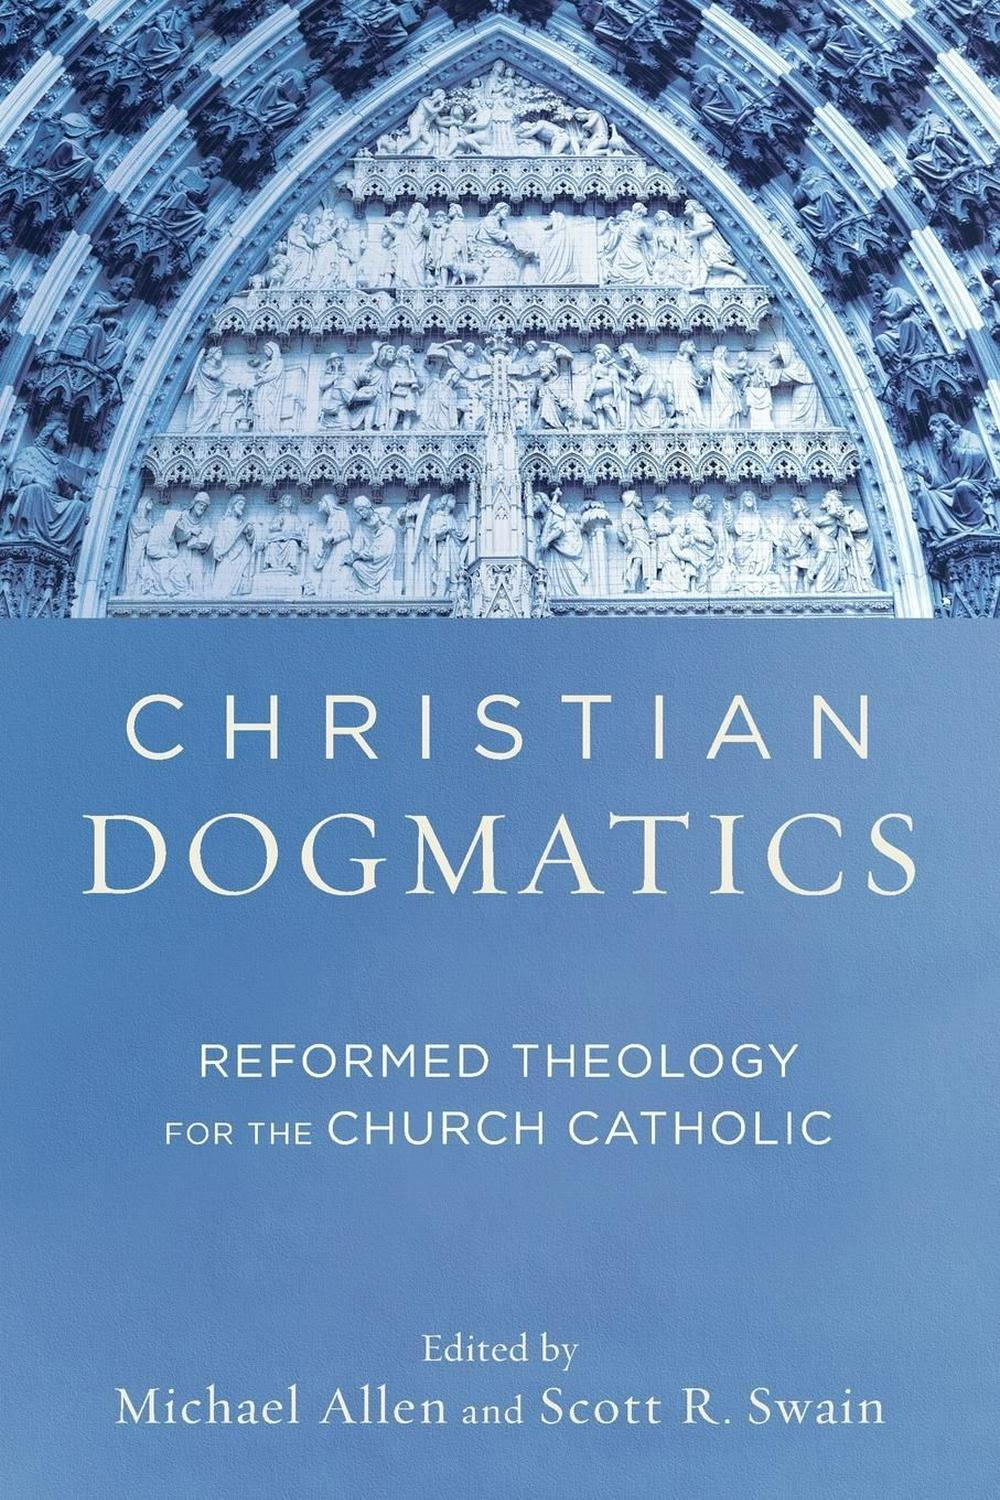 Christian Dogmatics: Reformed Theology for the Church Catholic